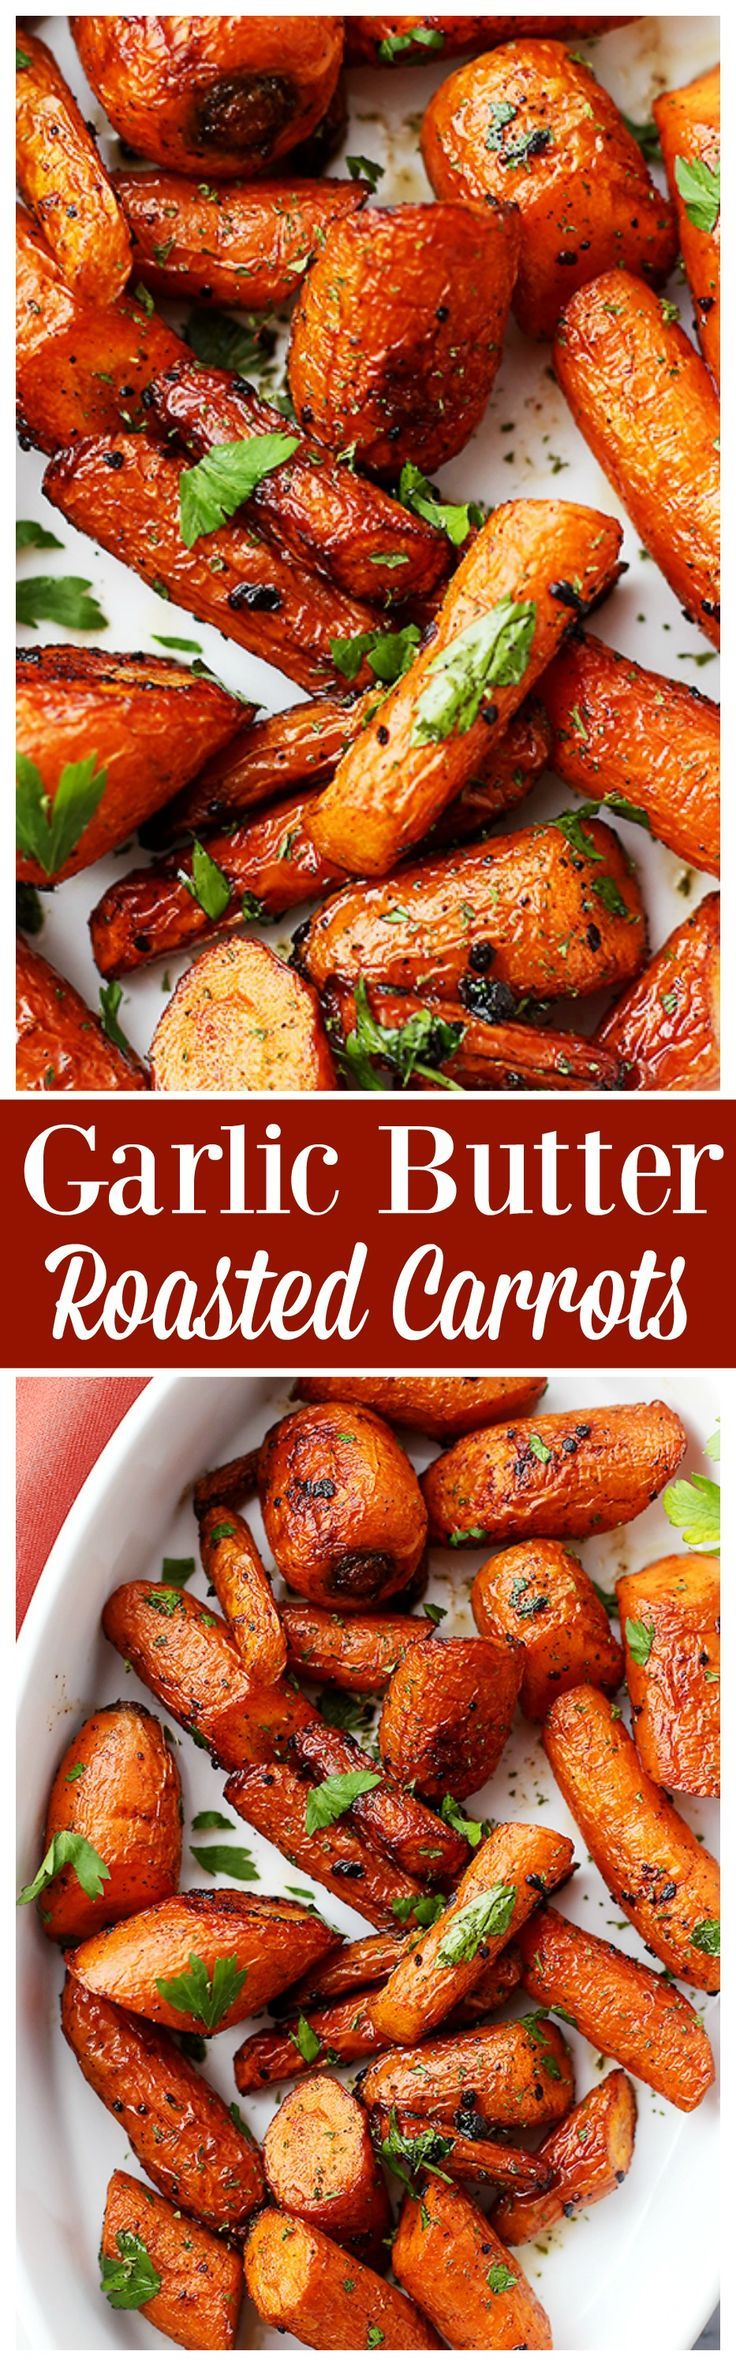 Garlic Butter Roasted Carrots - Ridiculously easy, yet tender and SO incredibly delicious roasted carrots with garlic butter.